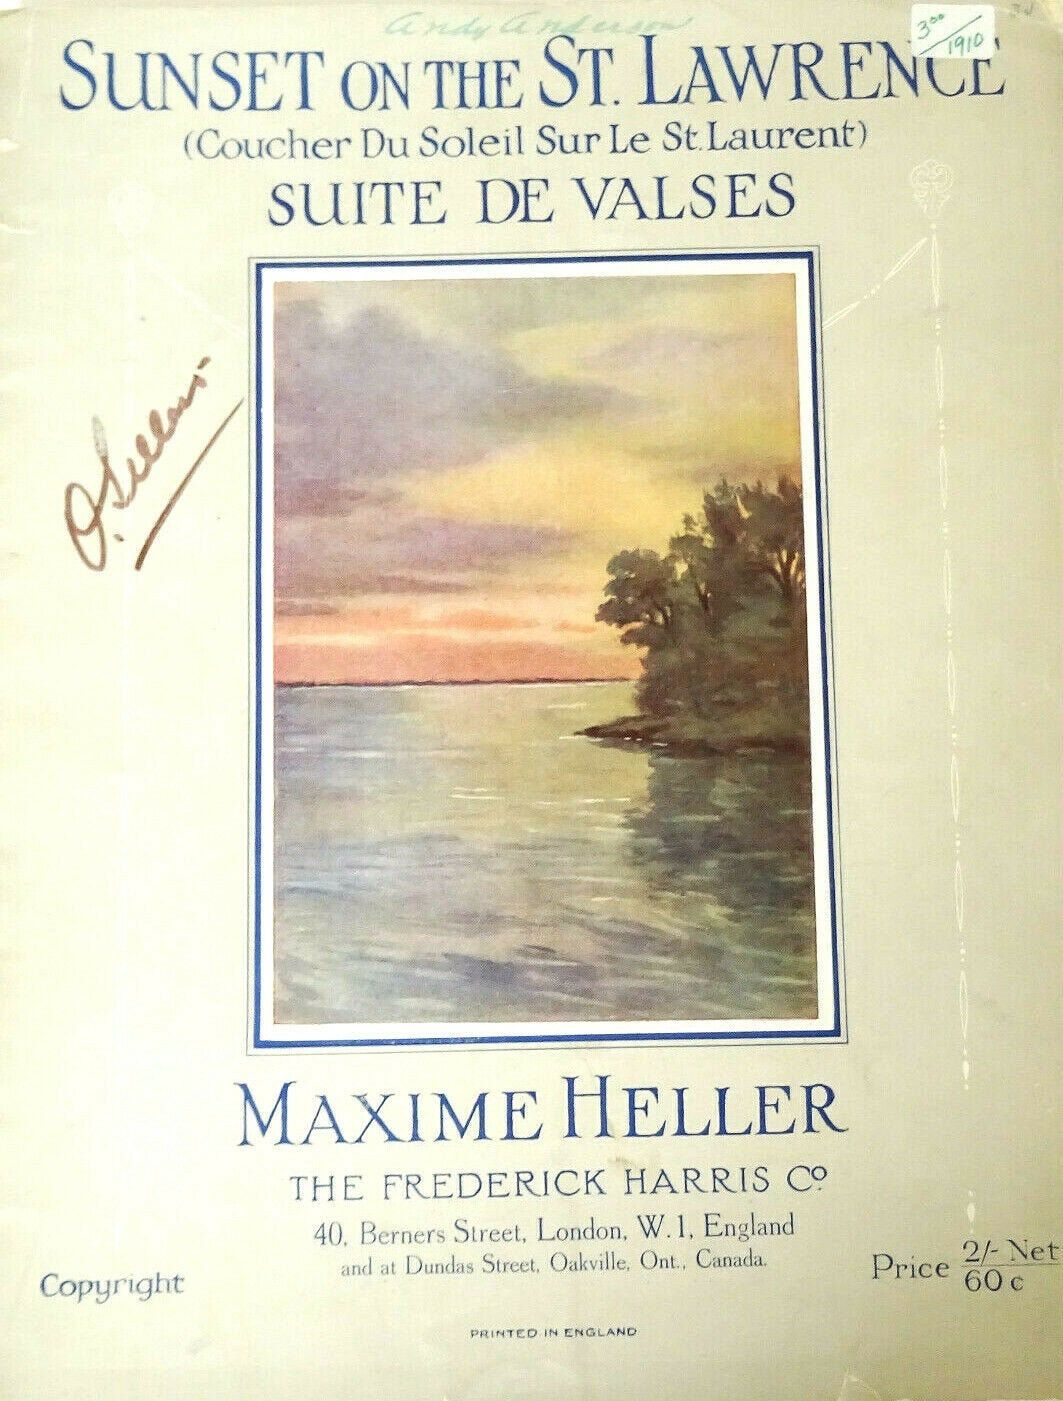 Sunset On The St. Lawrence Piano Solo Waltz Vintage Sheet Music 1910 Max Heller #vintagesheetmusic